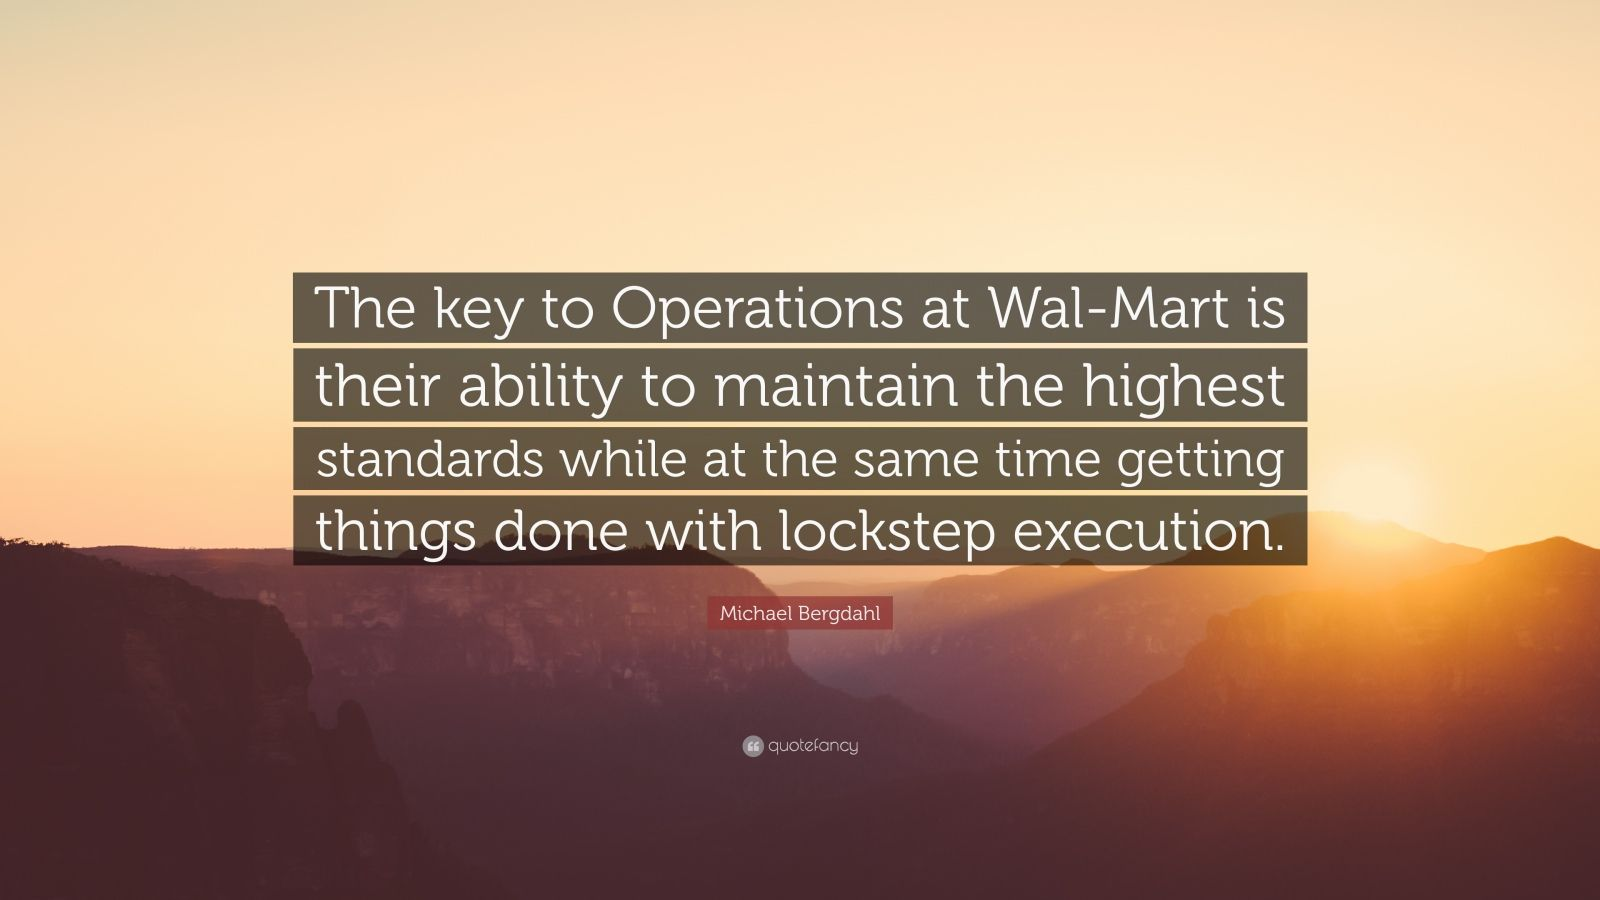 """Michael Bergdahl Quote: """"The key to Operations at Wal-Mart is their ability to maintain the highest standards while at the same time getting things done with lockstep execution."""""""